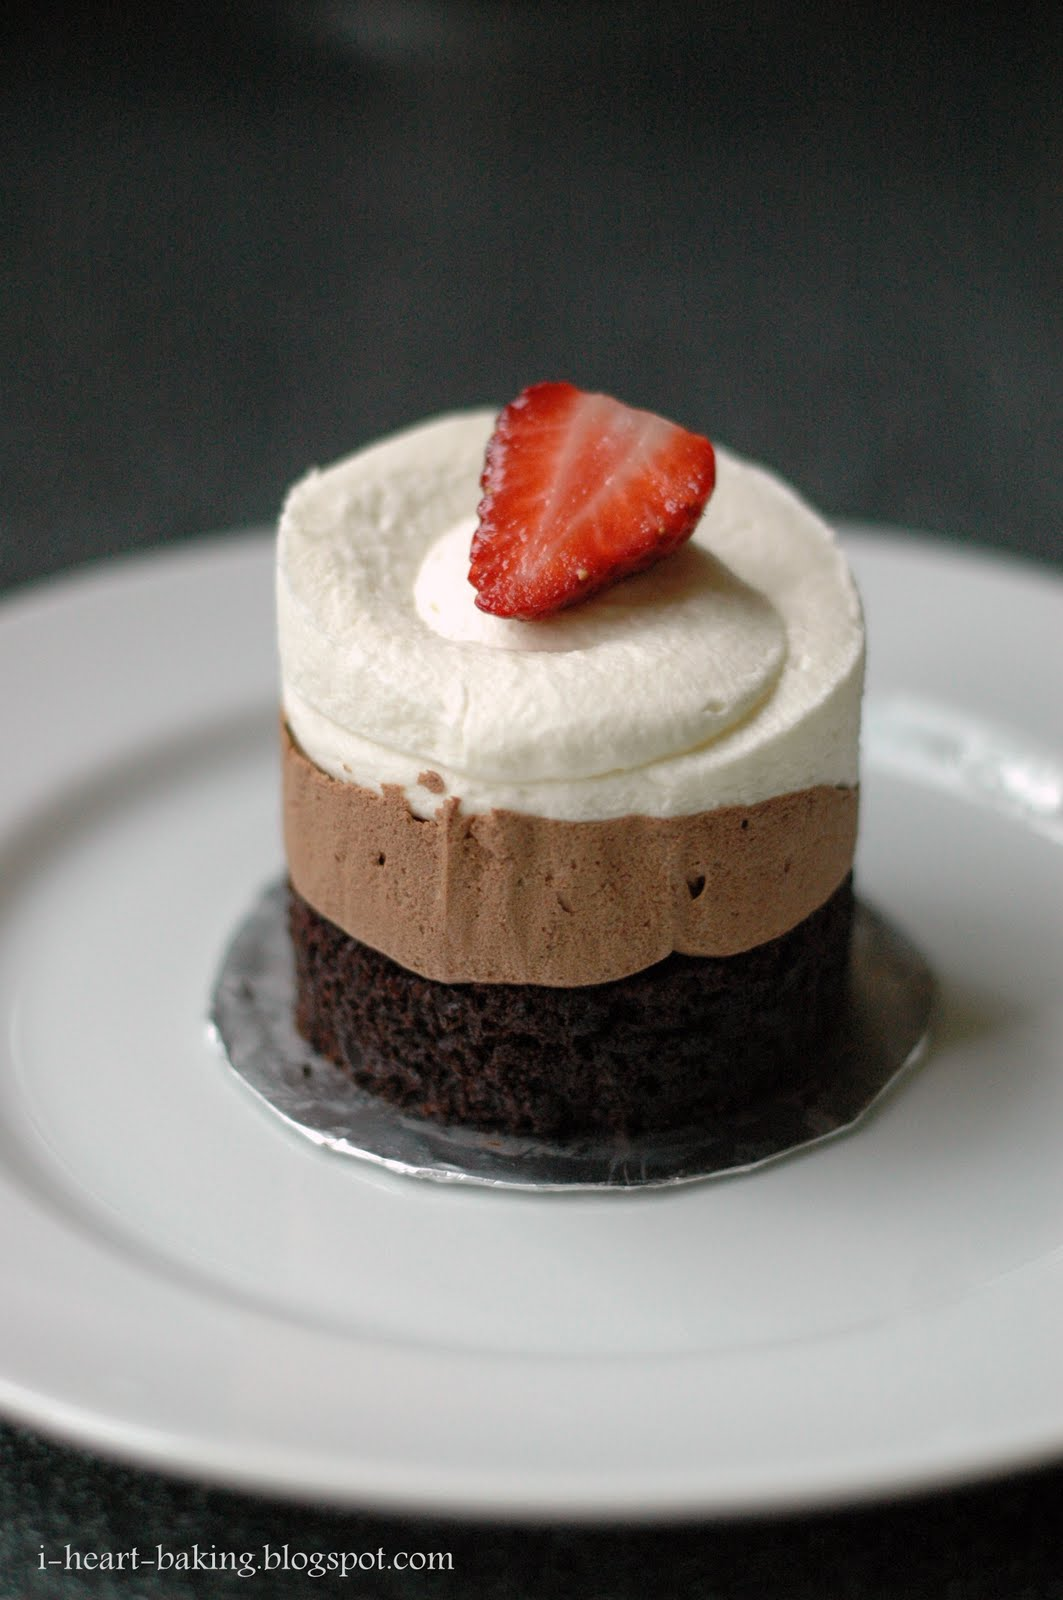 Triple Chocolate Mousse Cake Cook Images & Pictures - Becuo